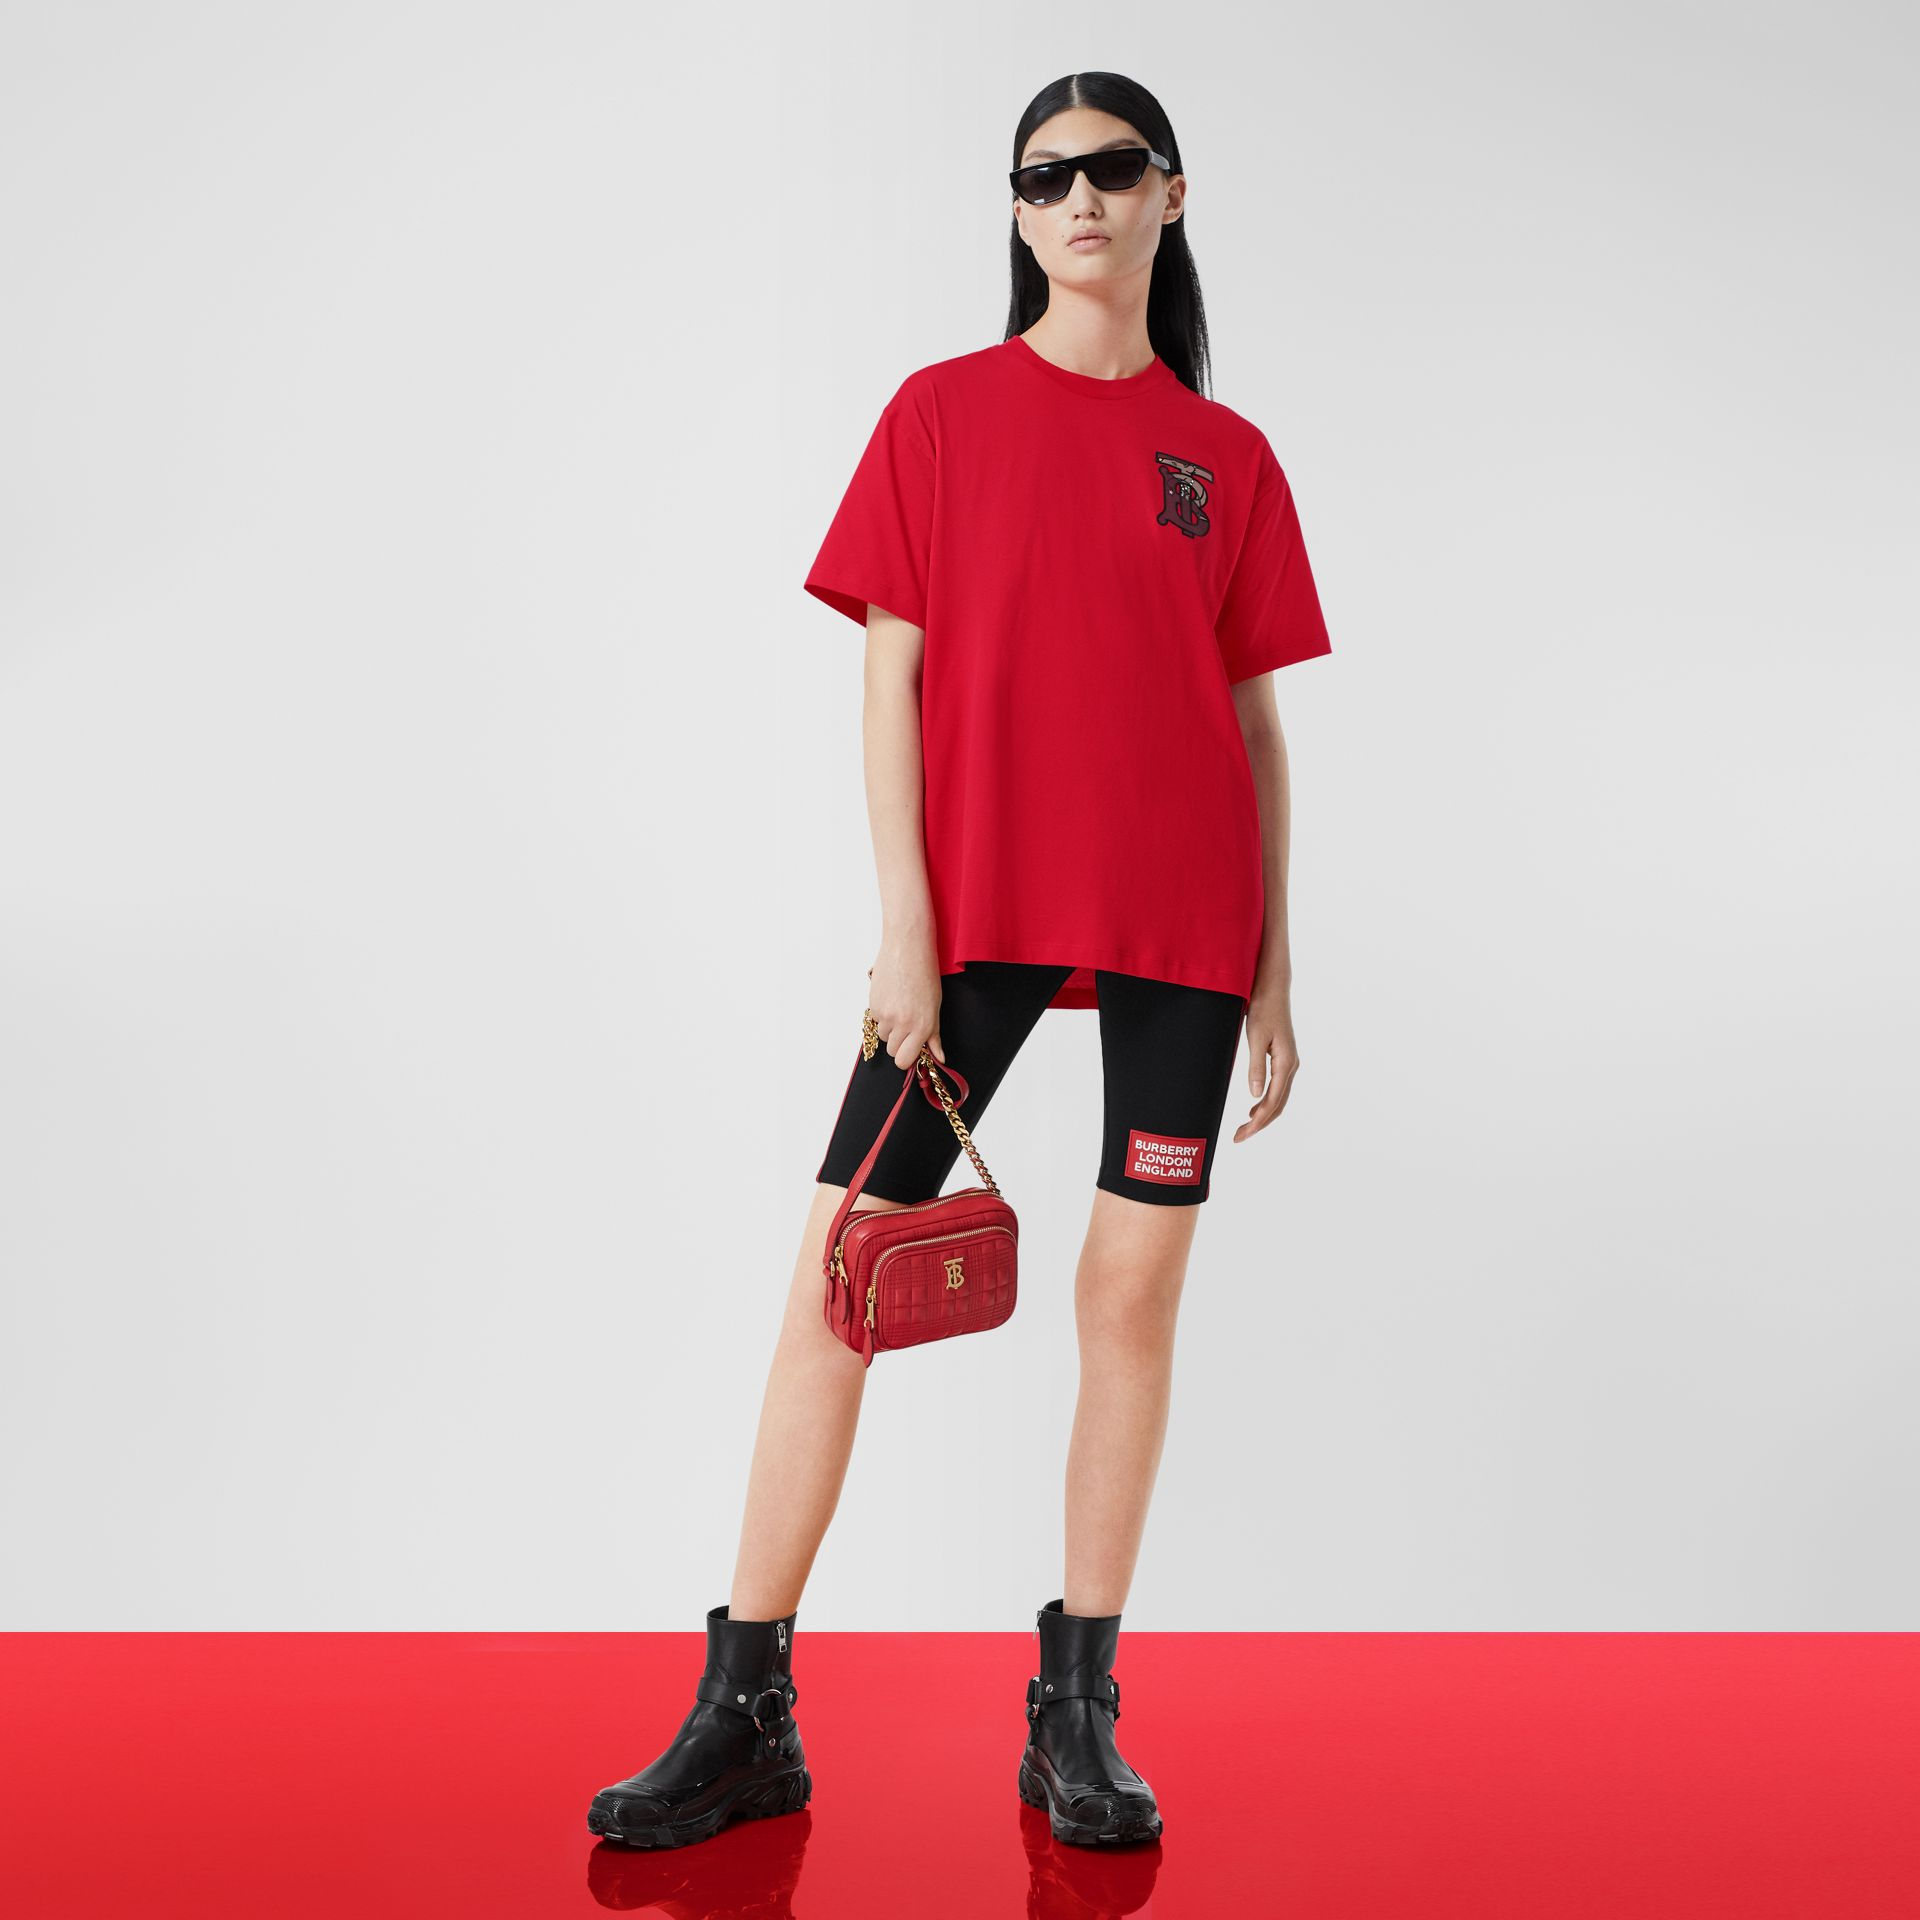 Monogram Motif Cotton Oversized T-shirt in Bright Red - Women | Burberry United Kingdom - gallery image 5